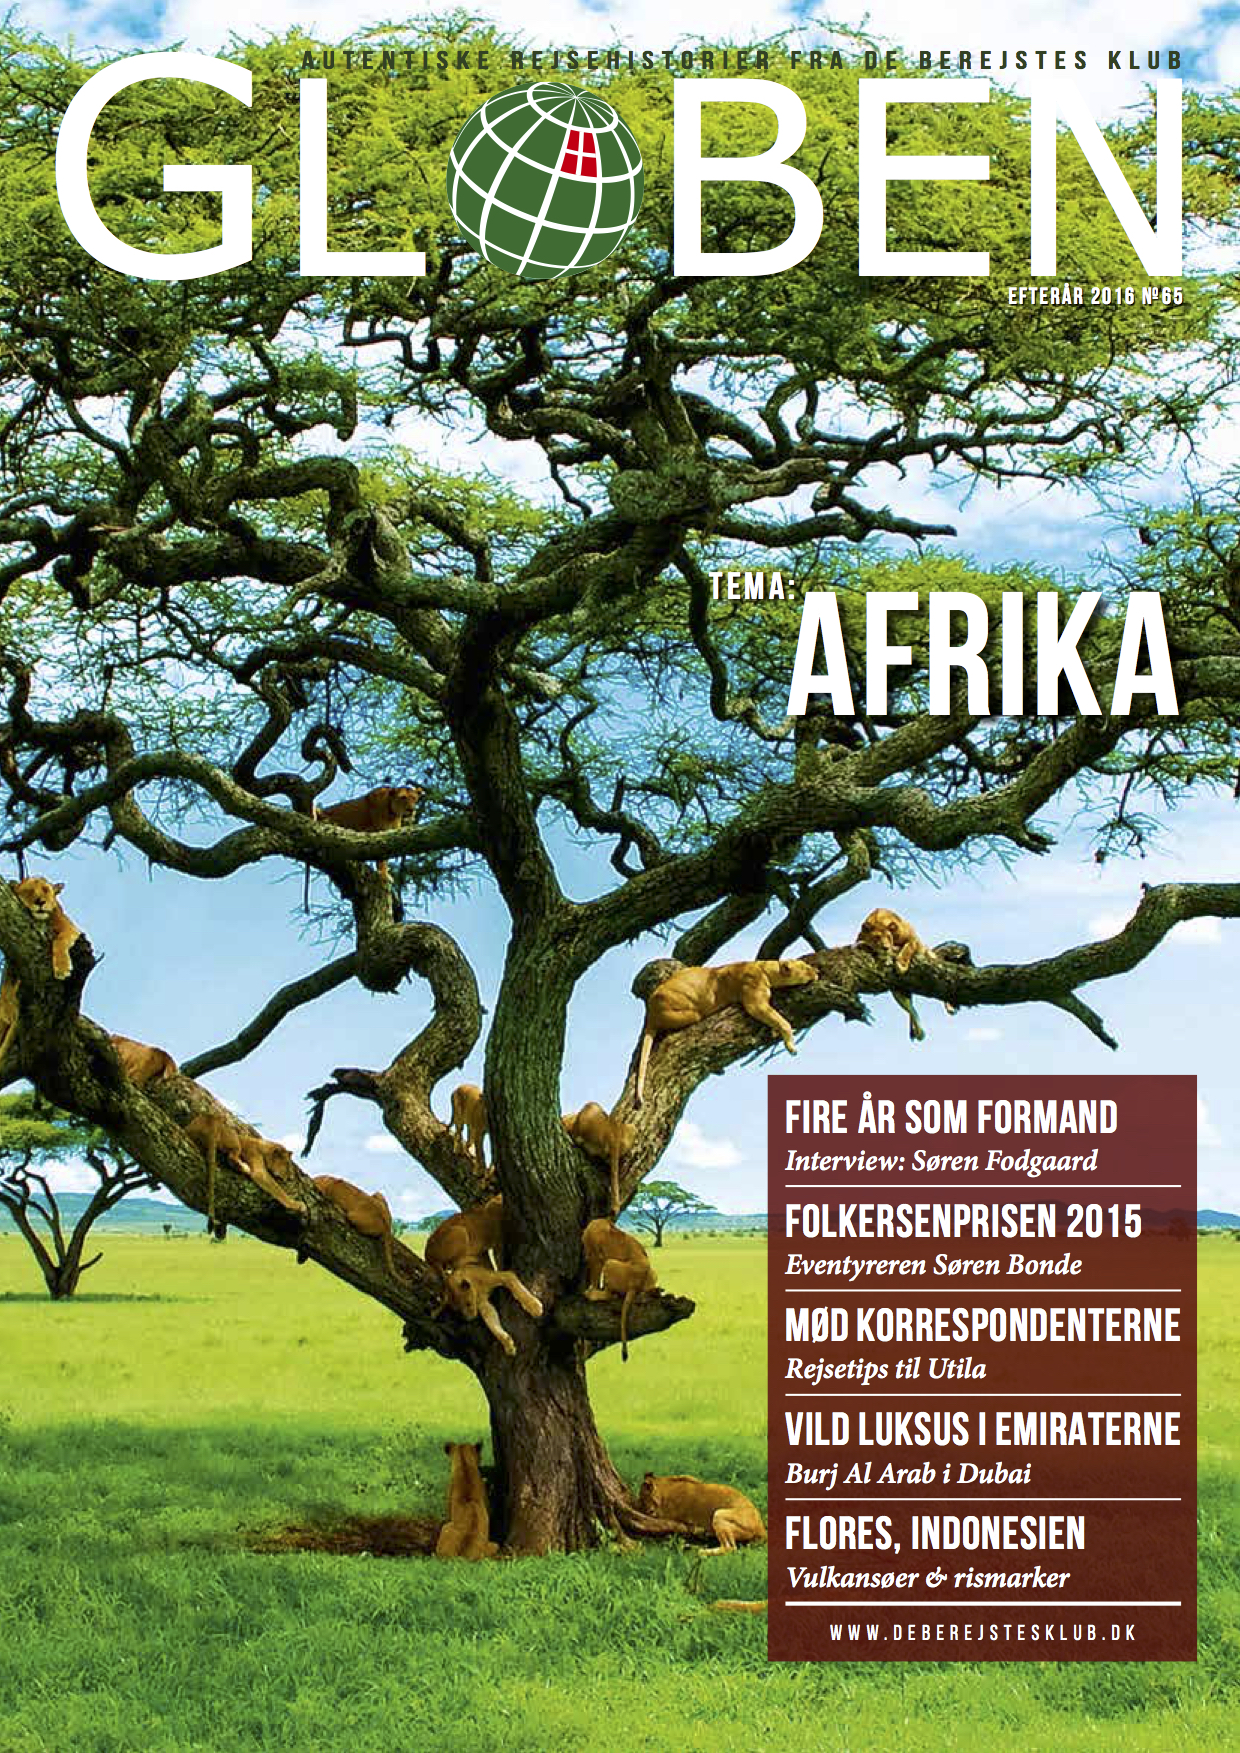 Issue 65: Afrika   The issue is about Africa and other stories, including a luxury stay in Dubai, volcano island of Flores in Indonesia. Link is not yet available.